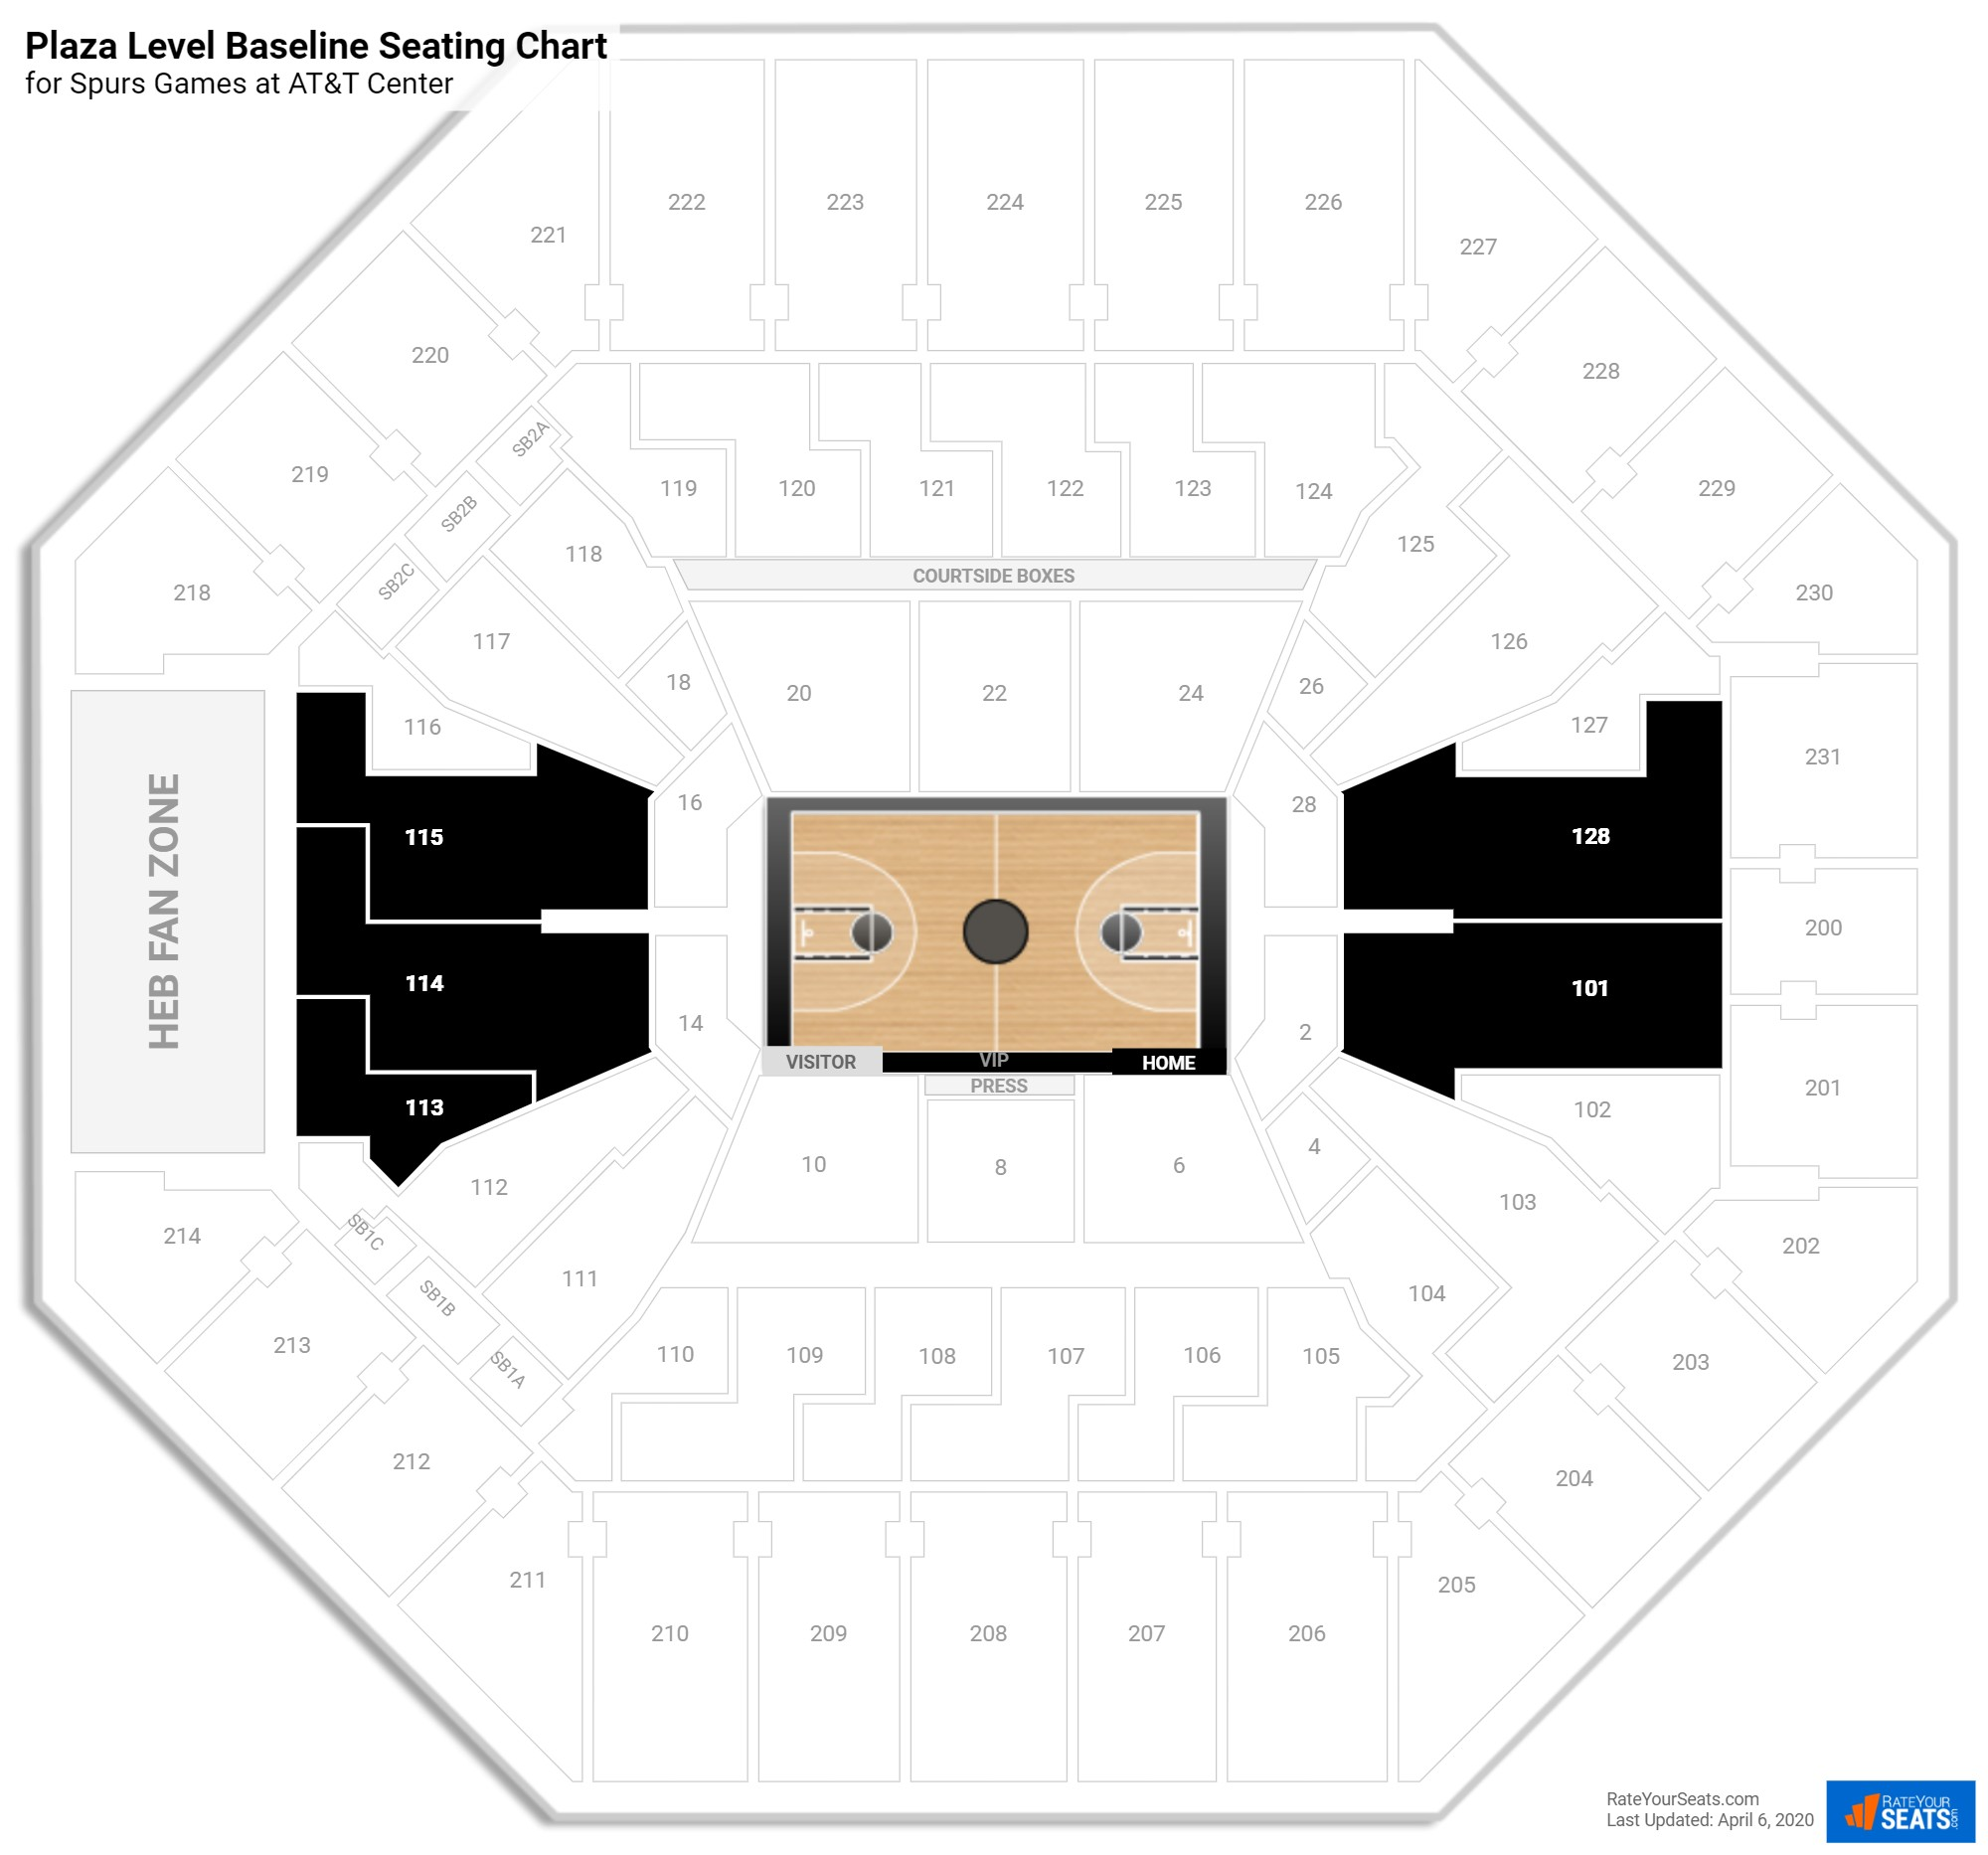 AT&T Center Plaza Baseline seating chart